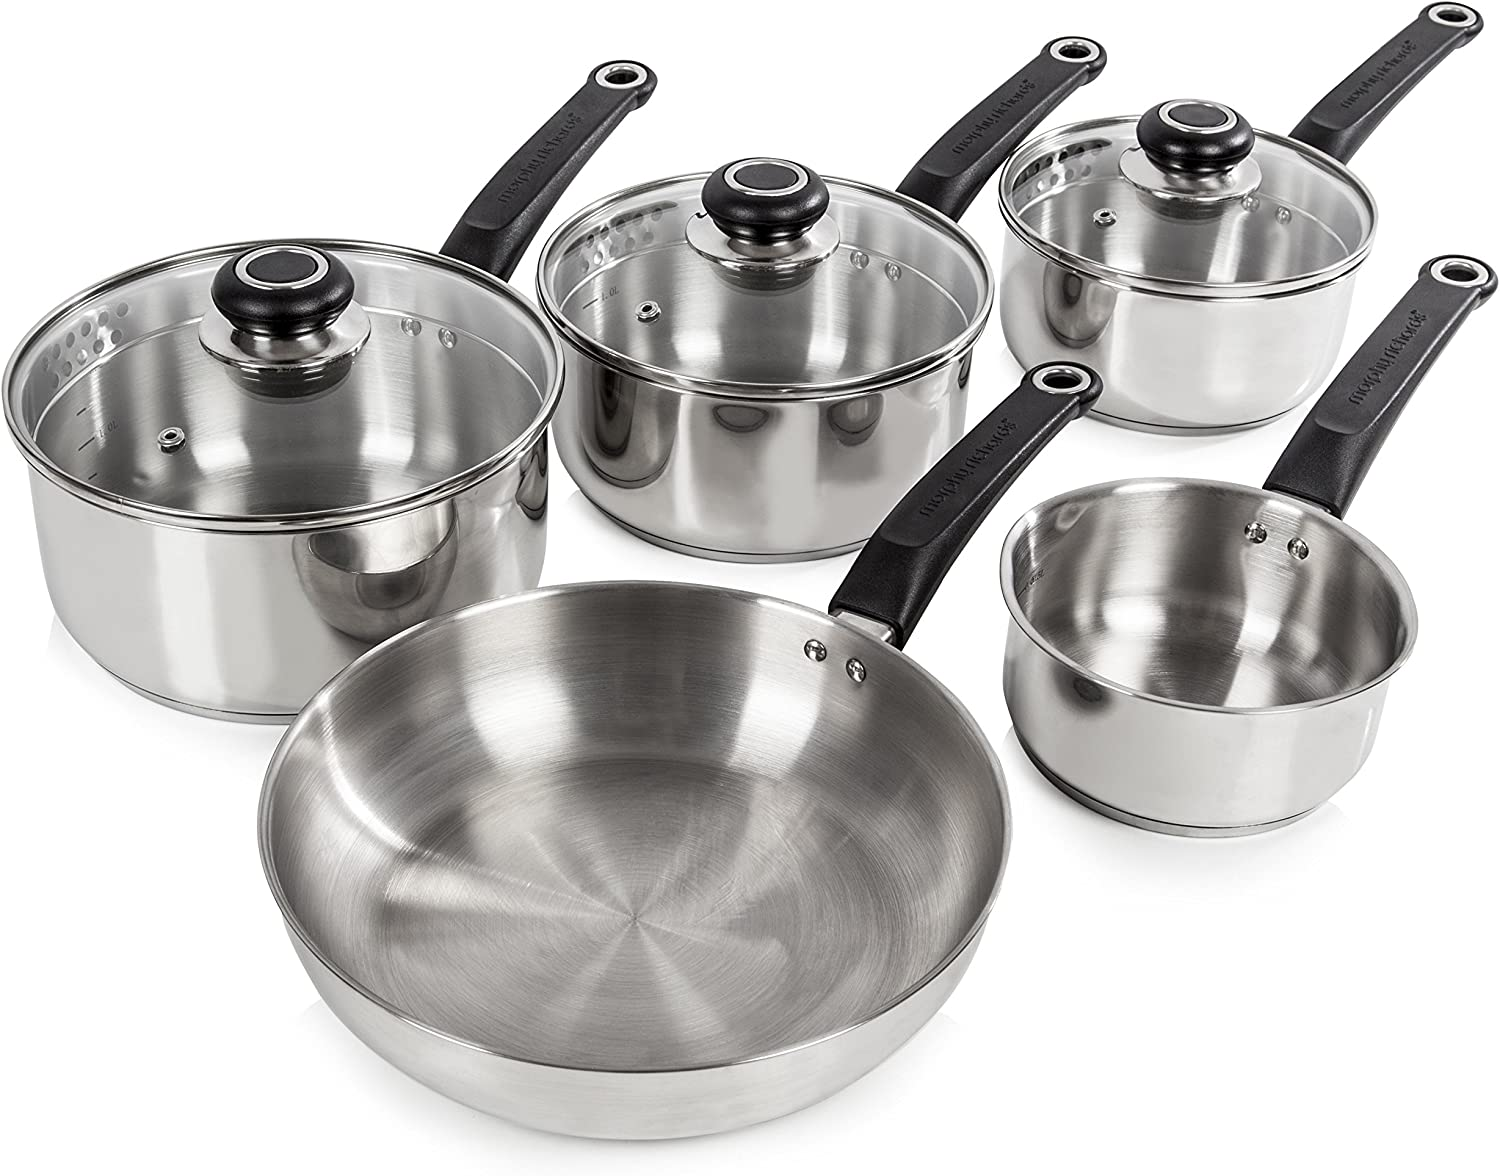 Morphy Richards Frying Pan and Saucepan Set With Lids, Stay Cool Handles,  Themocore Technology, Stainless Steel Pan Set, 9 Piece